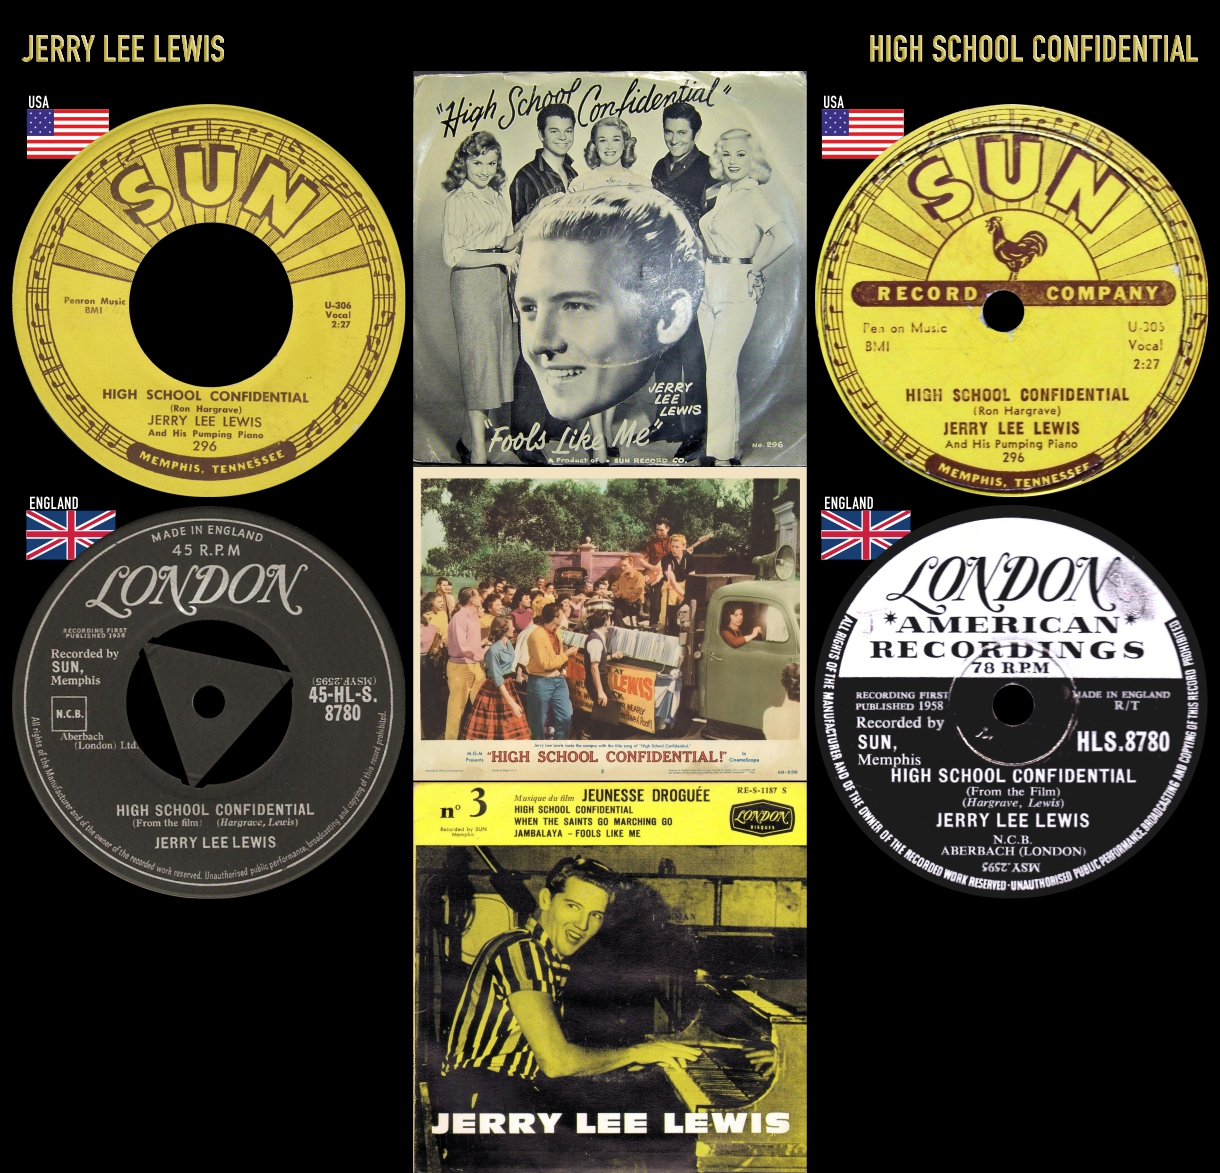 580607_Jerry Lee Lewis_High School Confidential